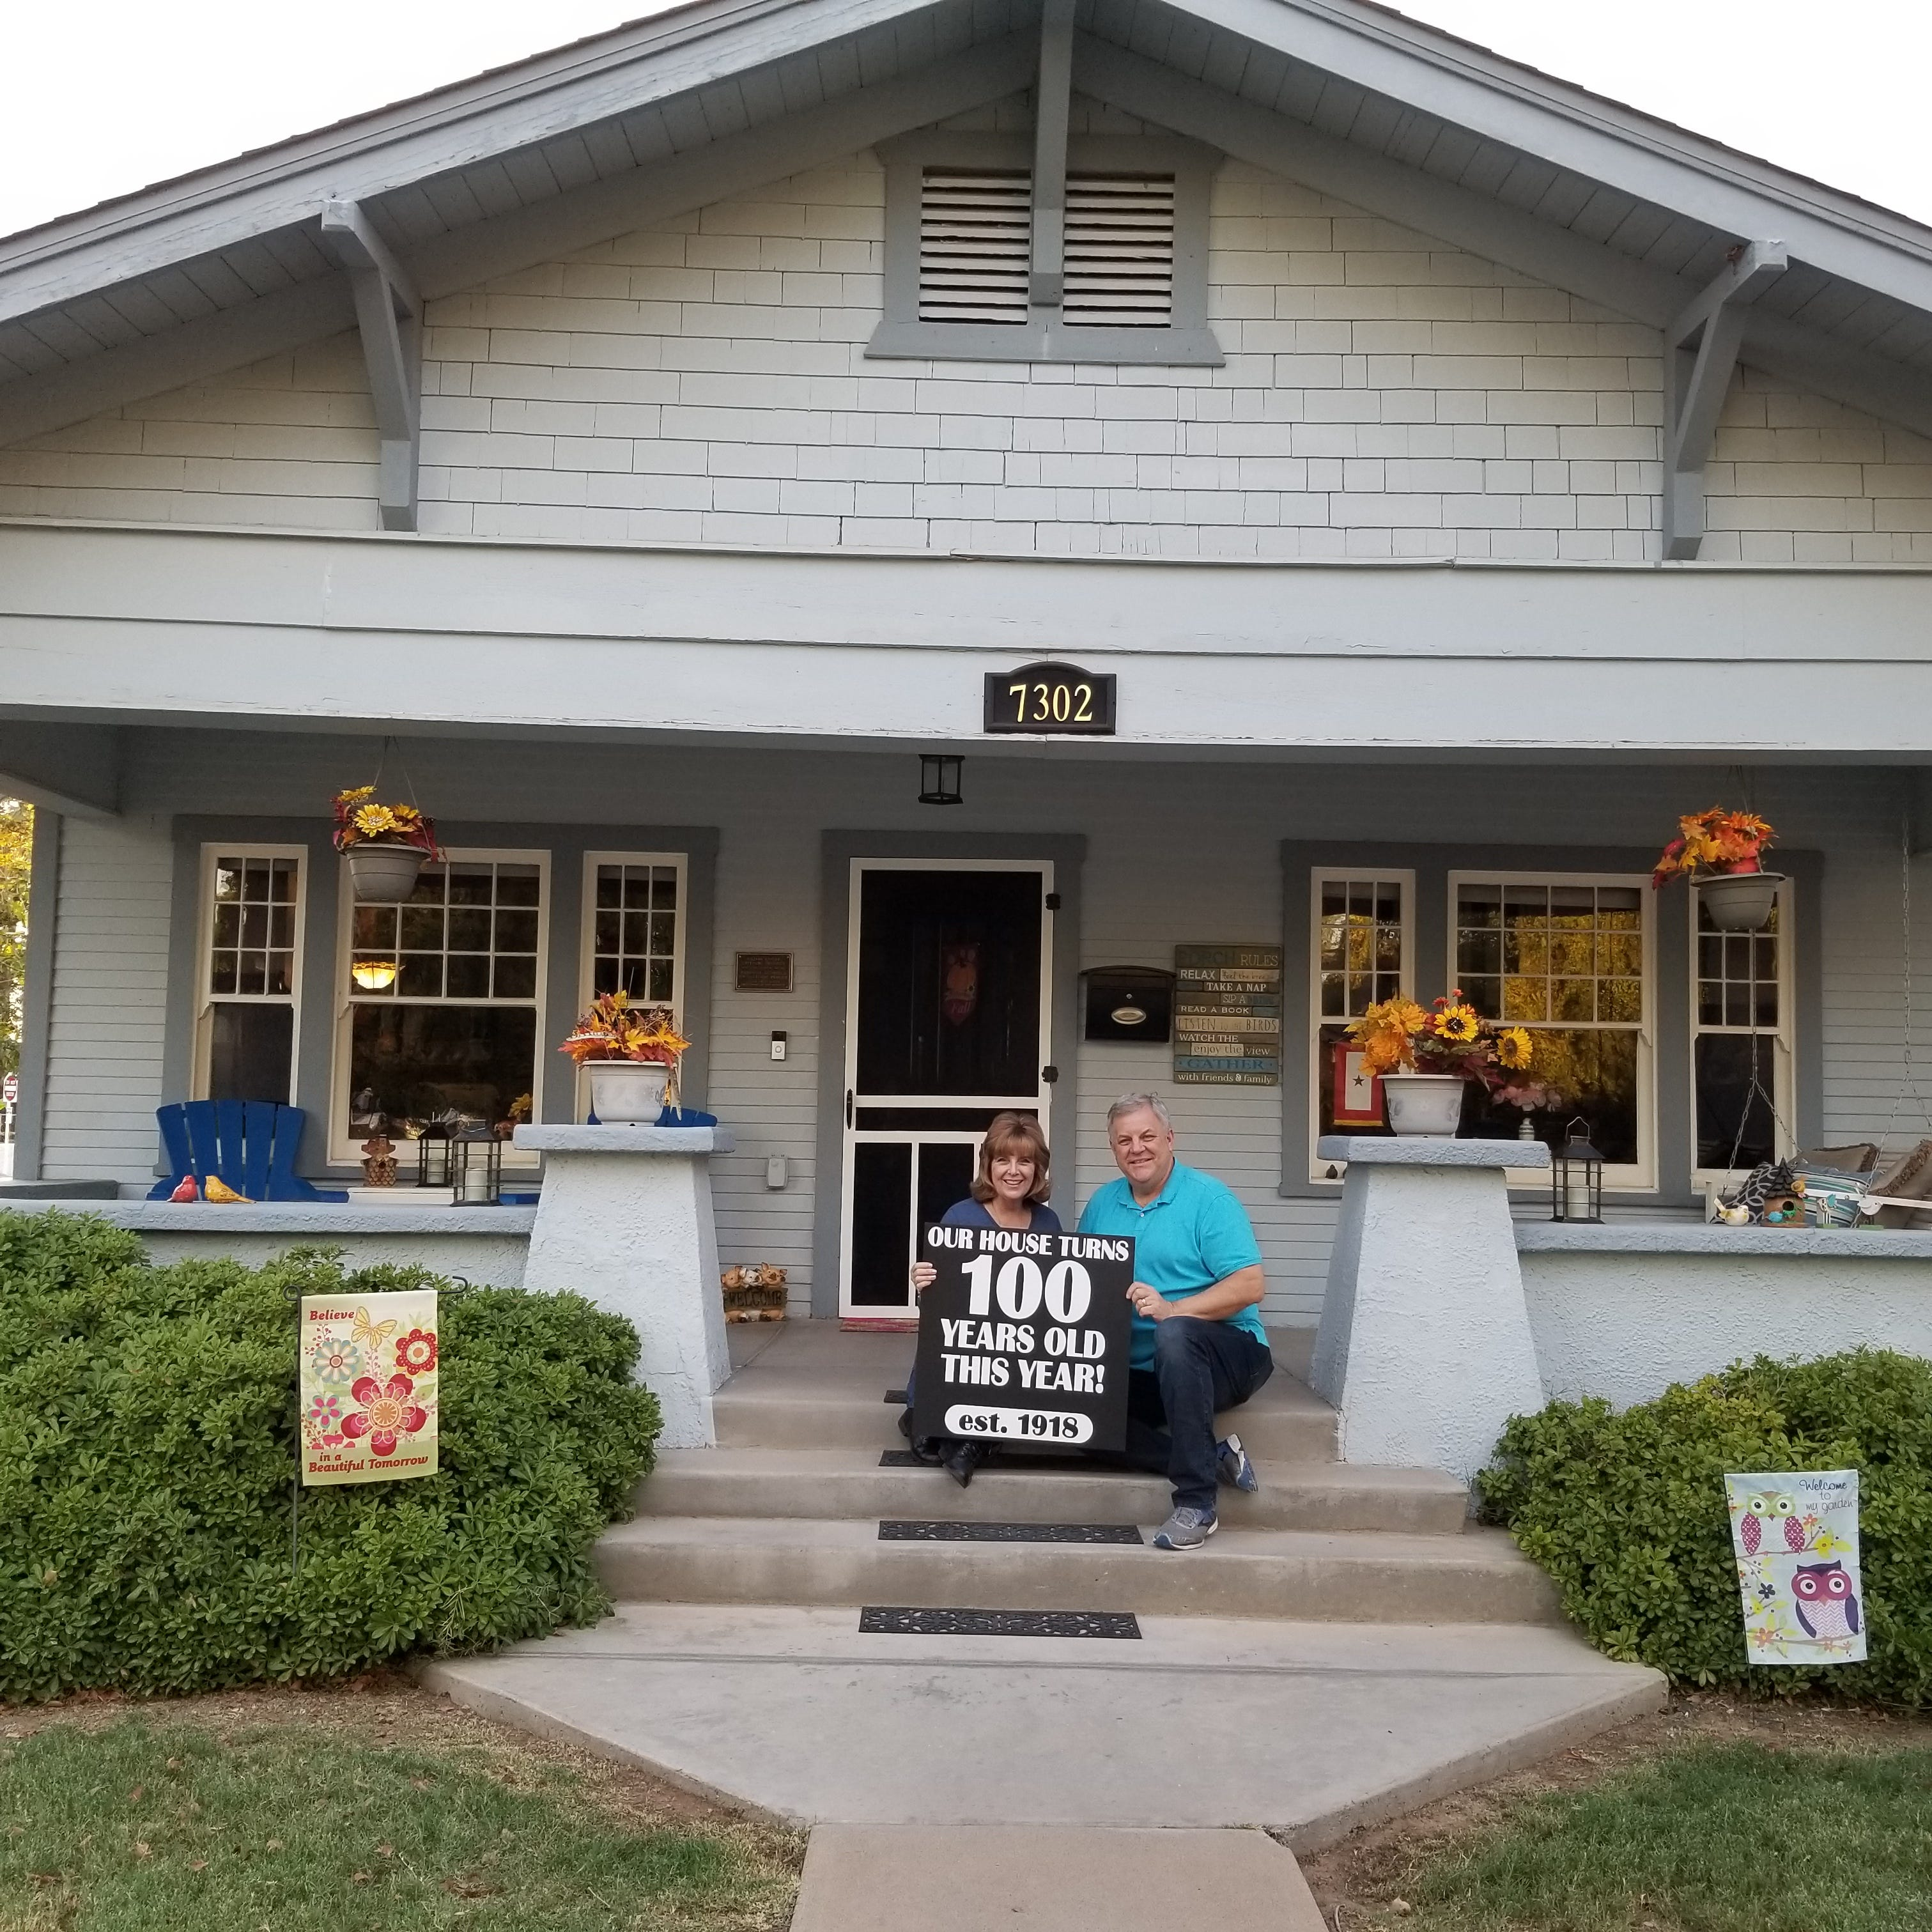 Historic Glendale arts and crafts bungalow celebrates 100th birthday